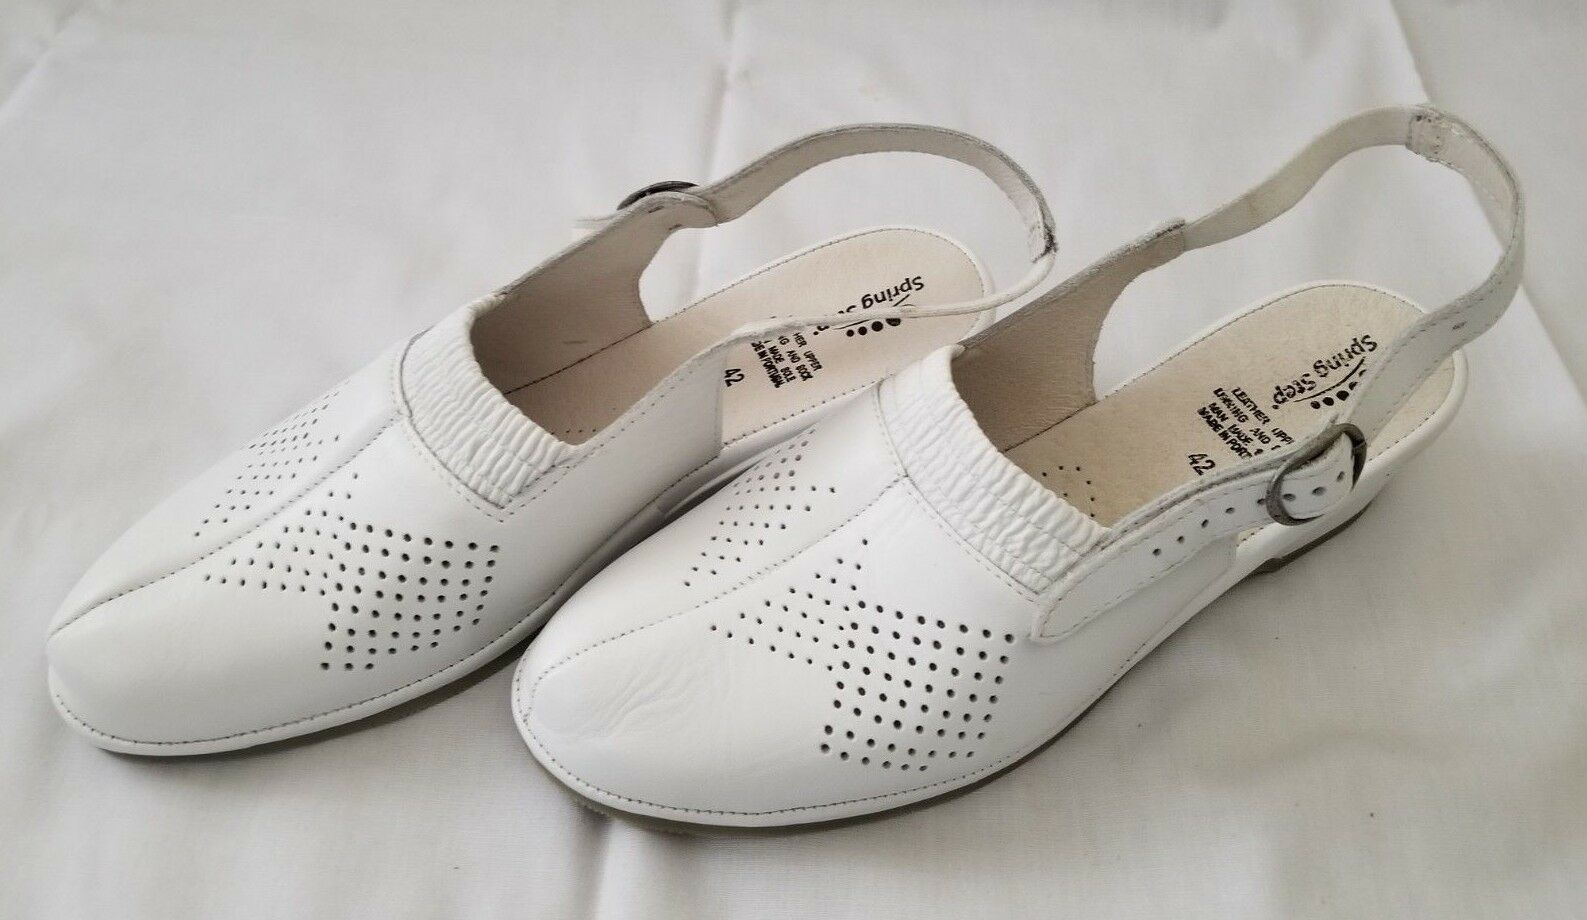 Womens Size 42(US11.5) White Spring Step Gina Leather Slingback Sandals preowned